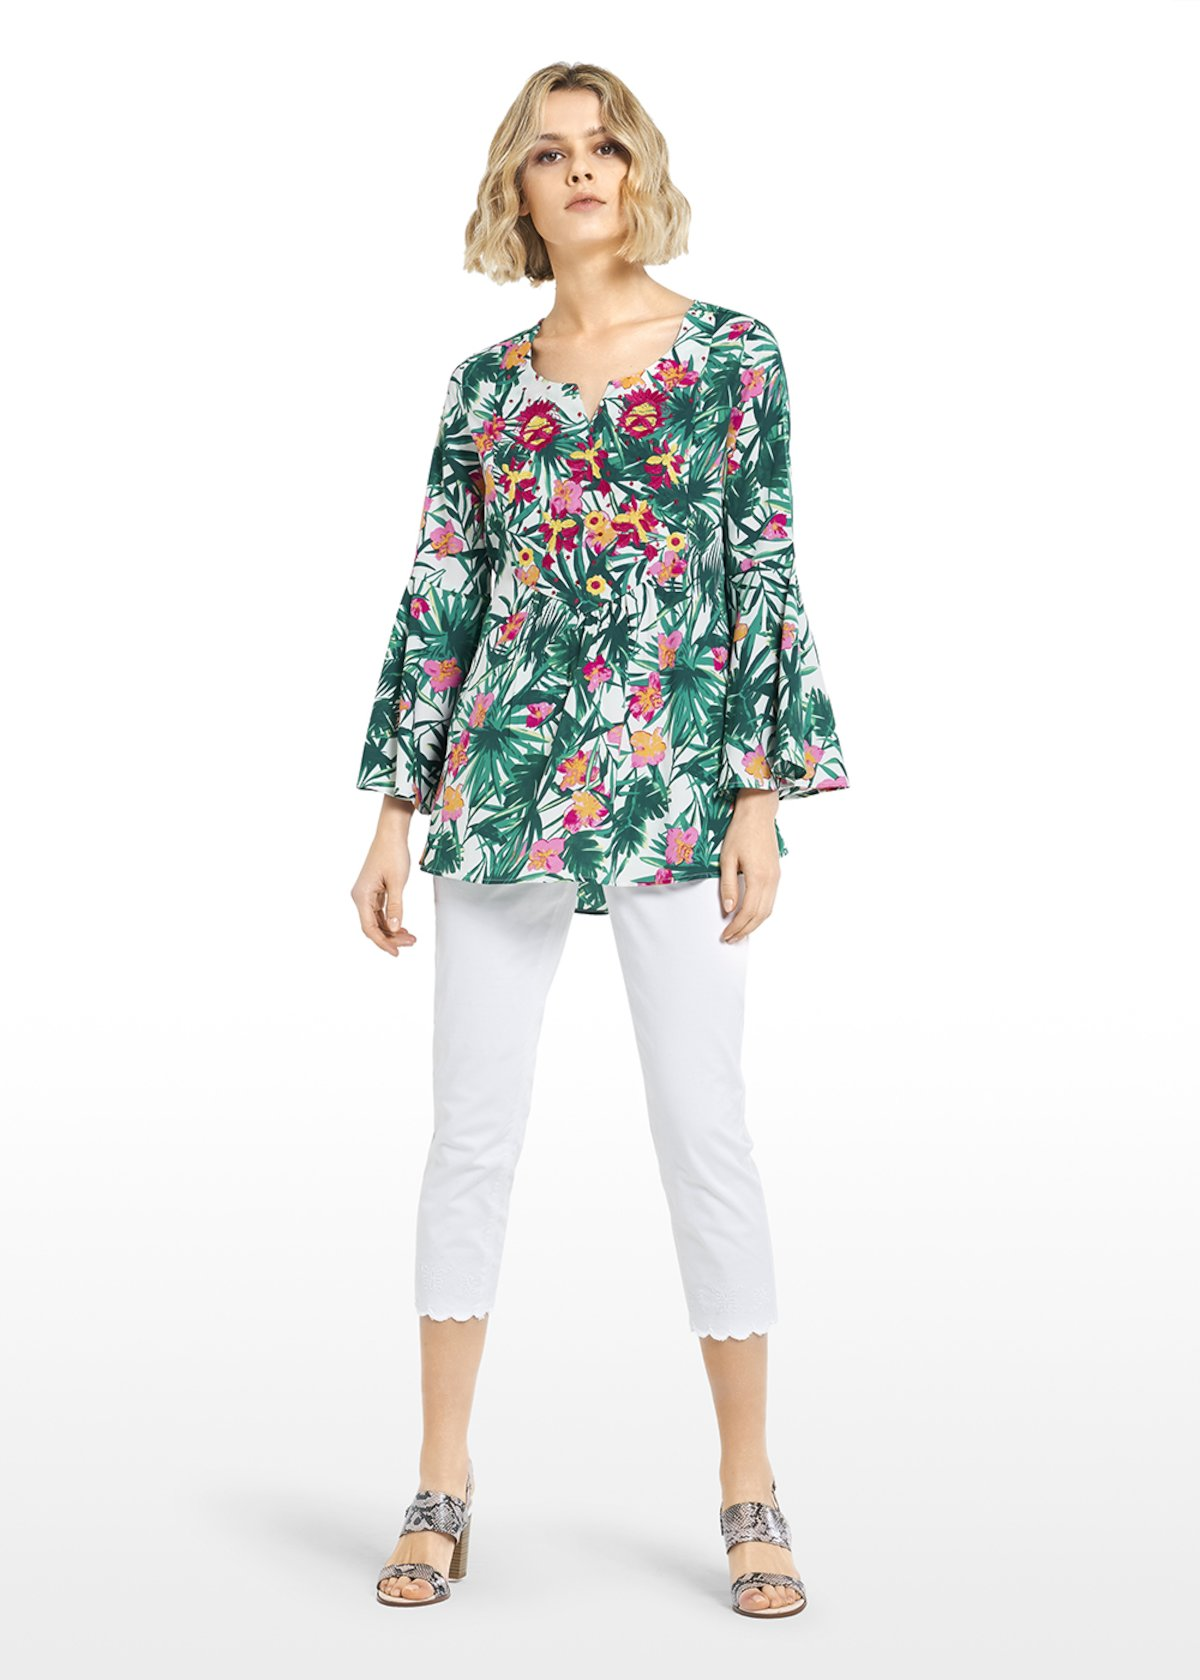 Consuelo blouse with embroidery on the front - White\ Amazon\ Fantasia - Woman - Category image